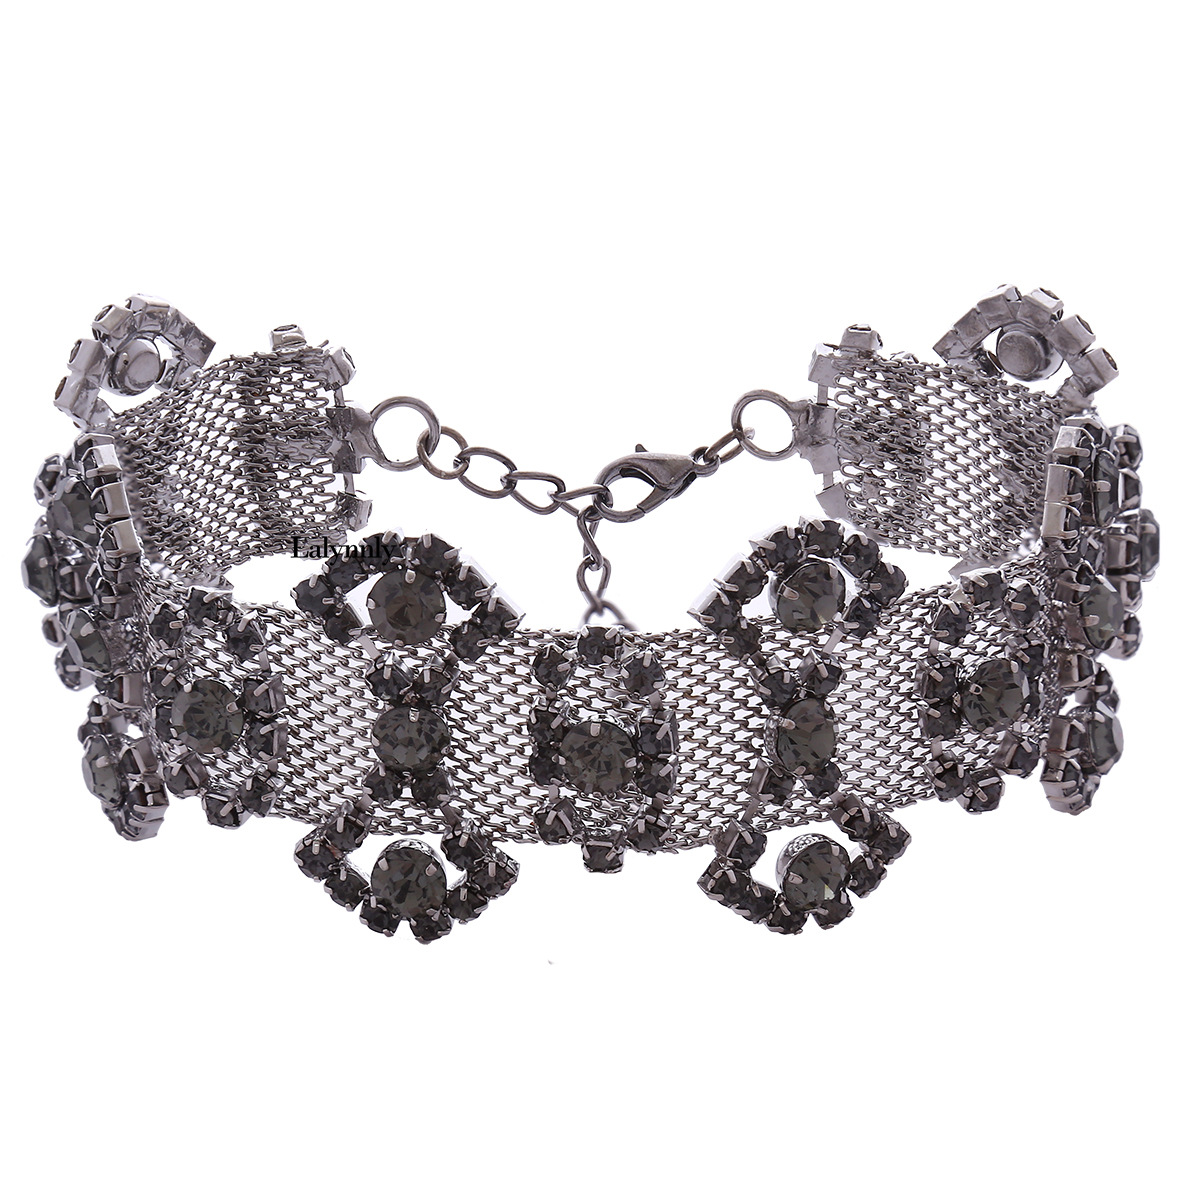 Occident and the United States alloy Diamond necklace (Gun black)NHNMD3824-Gun black